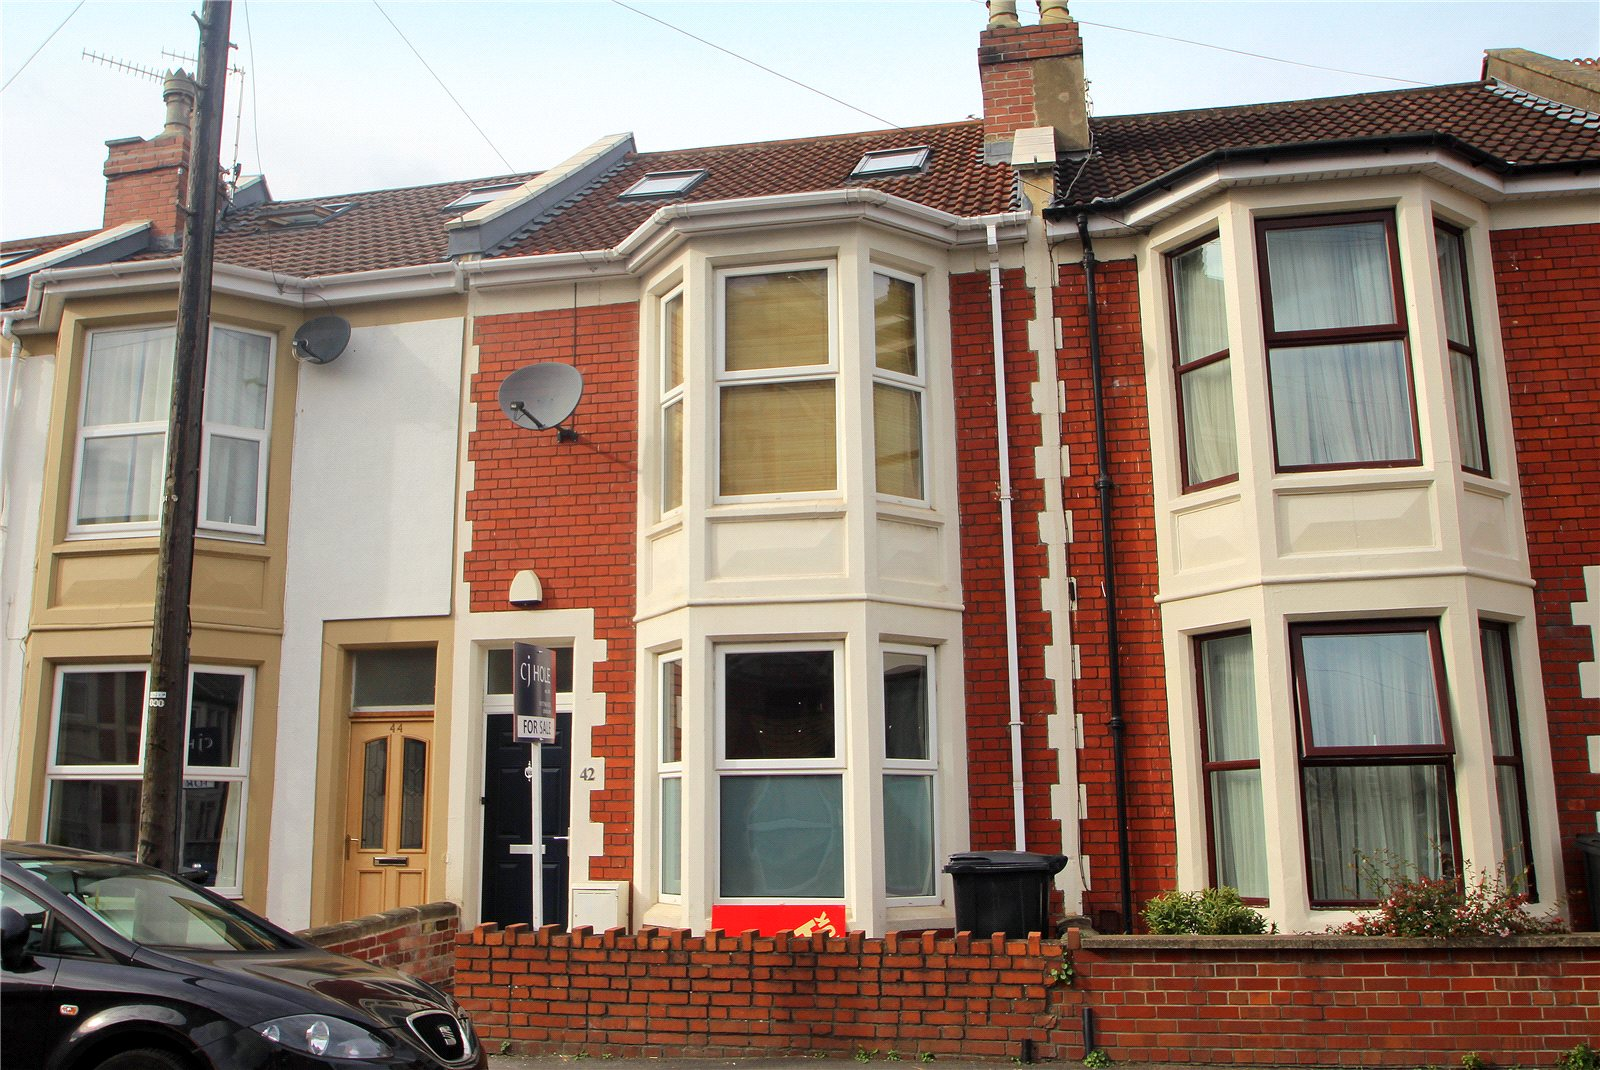 Cj Hole Southville 3 Bedroom House For Sale In Raleigh Road Southville Bristol Bs3 Cj Hole